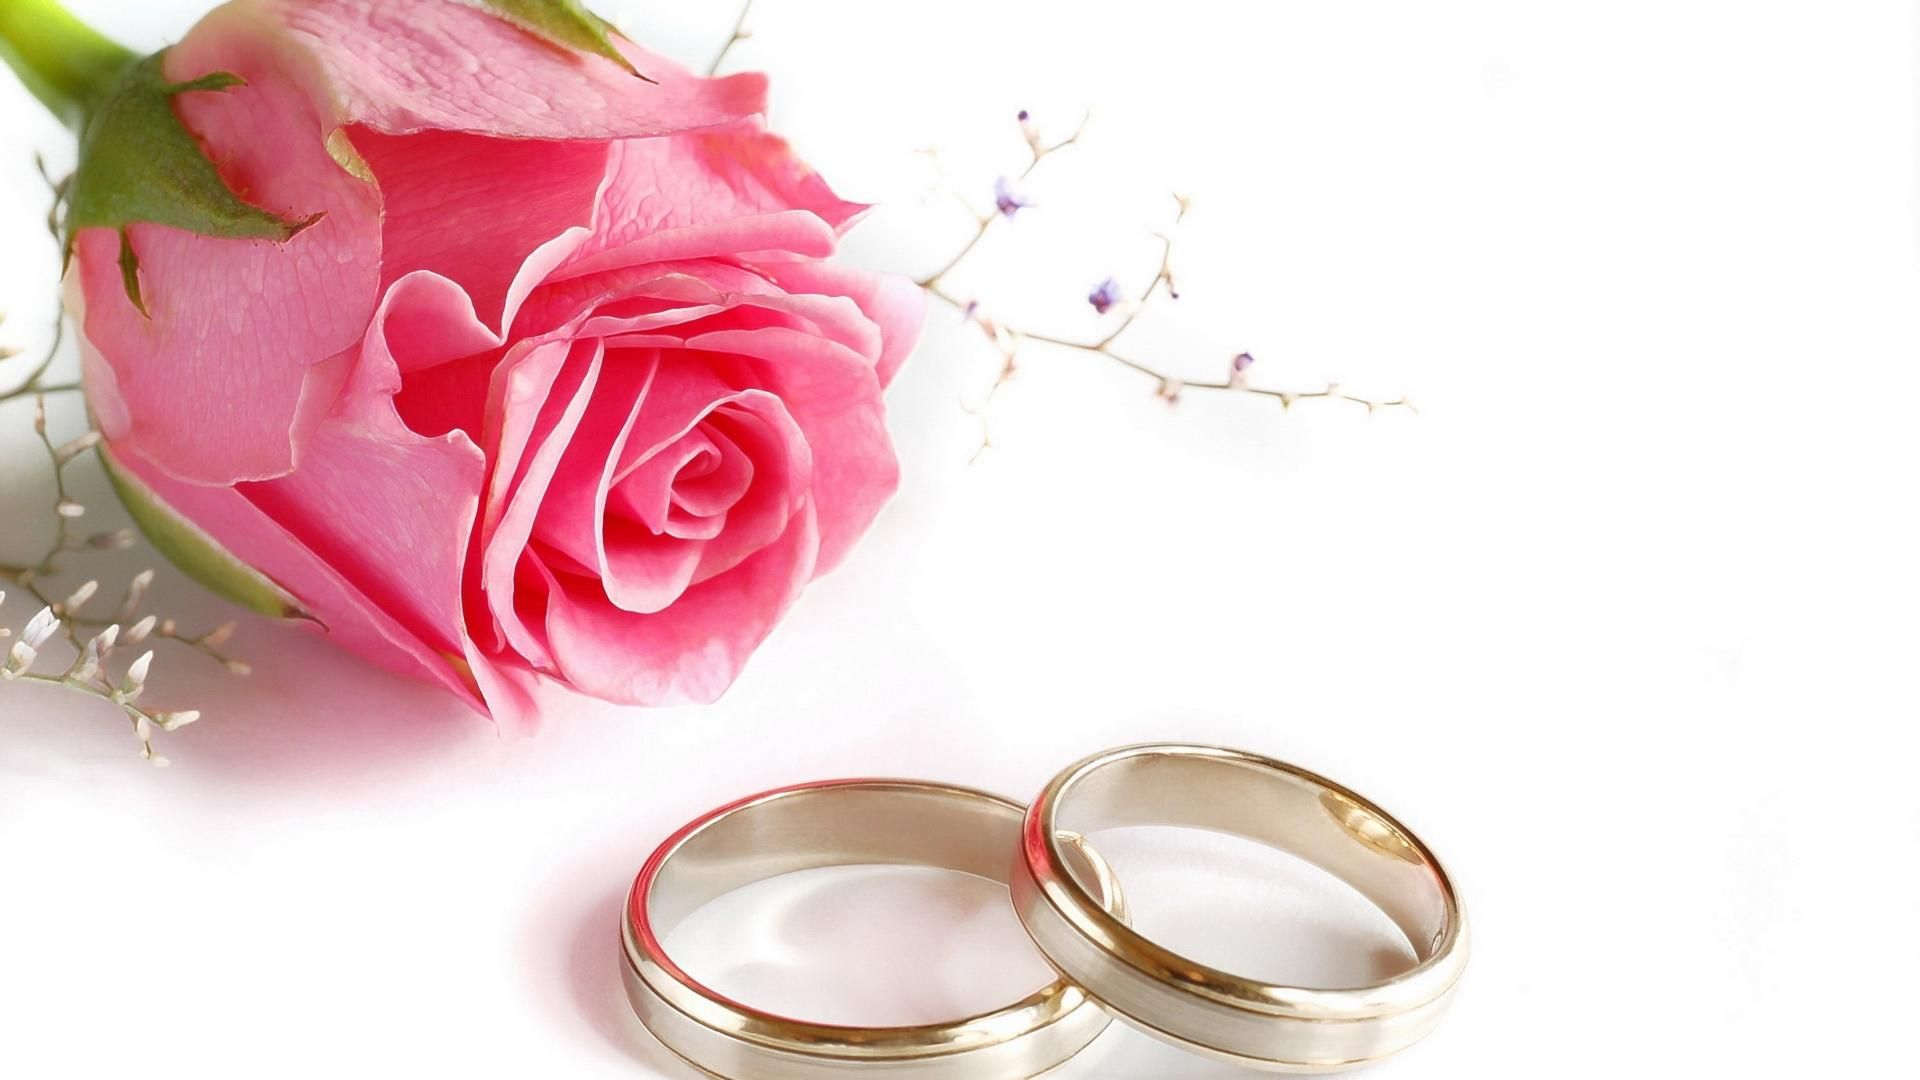 Wedding Rings Rose Flower HD Wallpaper | Wedding background ...